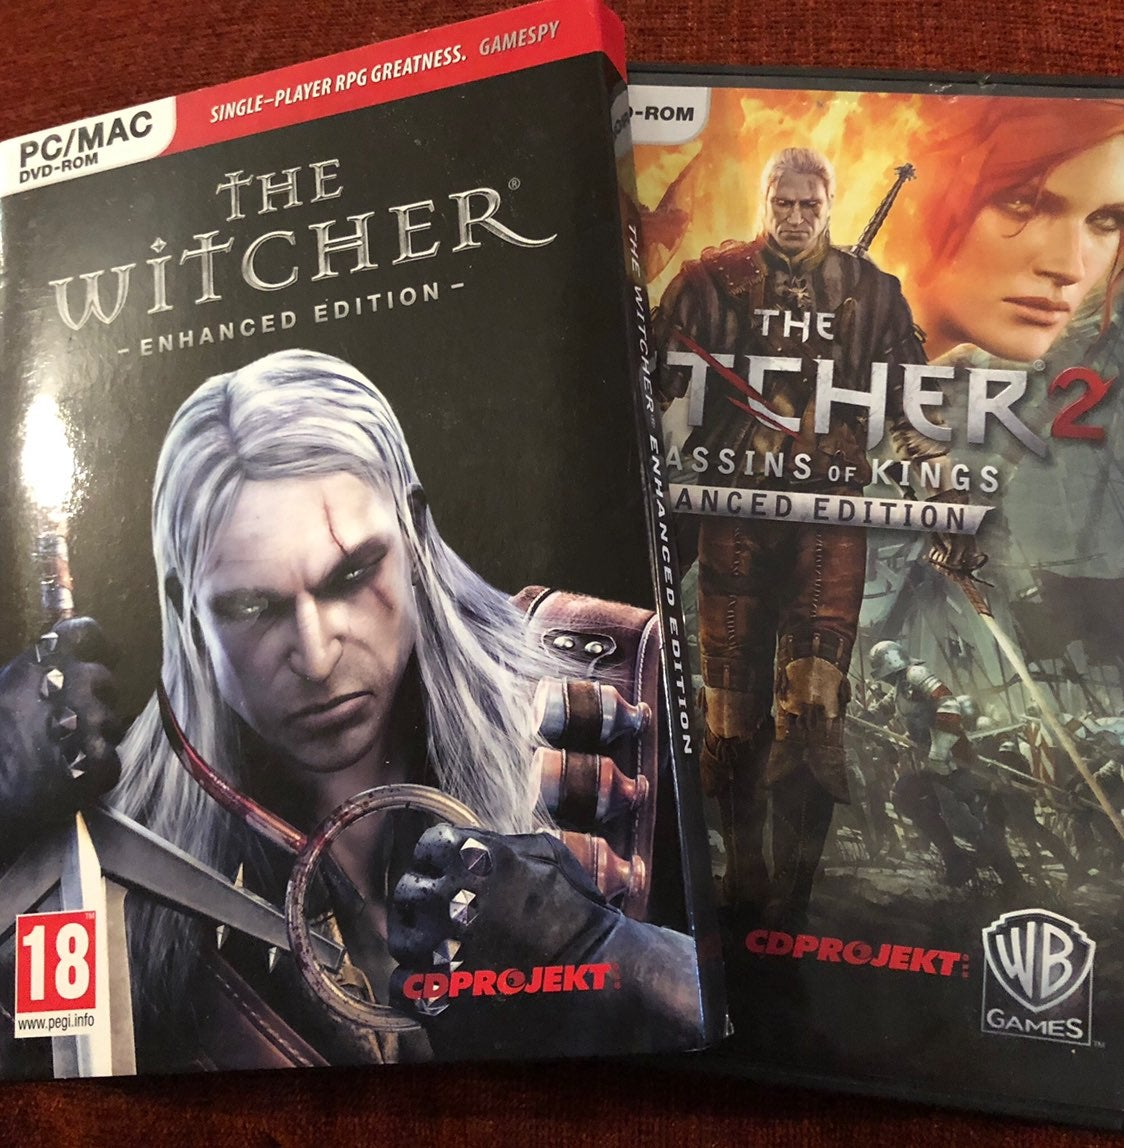 The Witcher 1 and 2 for PC (Bundle)